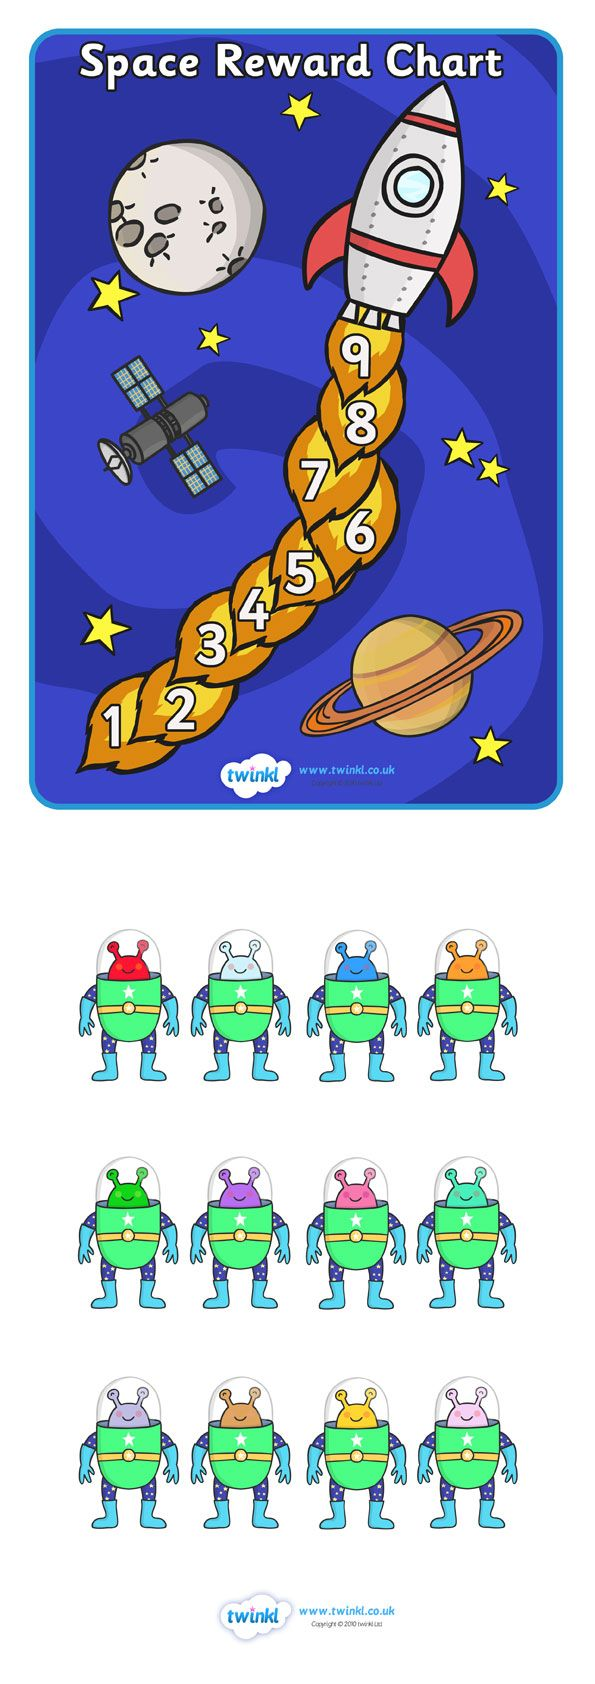 Twinkl Resources >> Space Reward Chart >> Thousands of printable primary teaching resources for EYFS, KS1, KS2 and beyond! space, reward, award